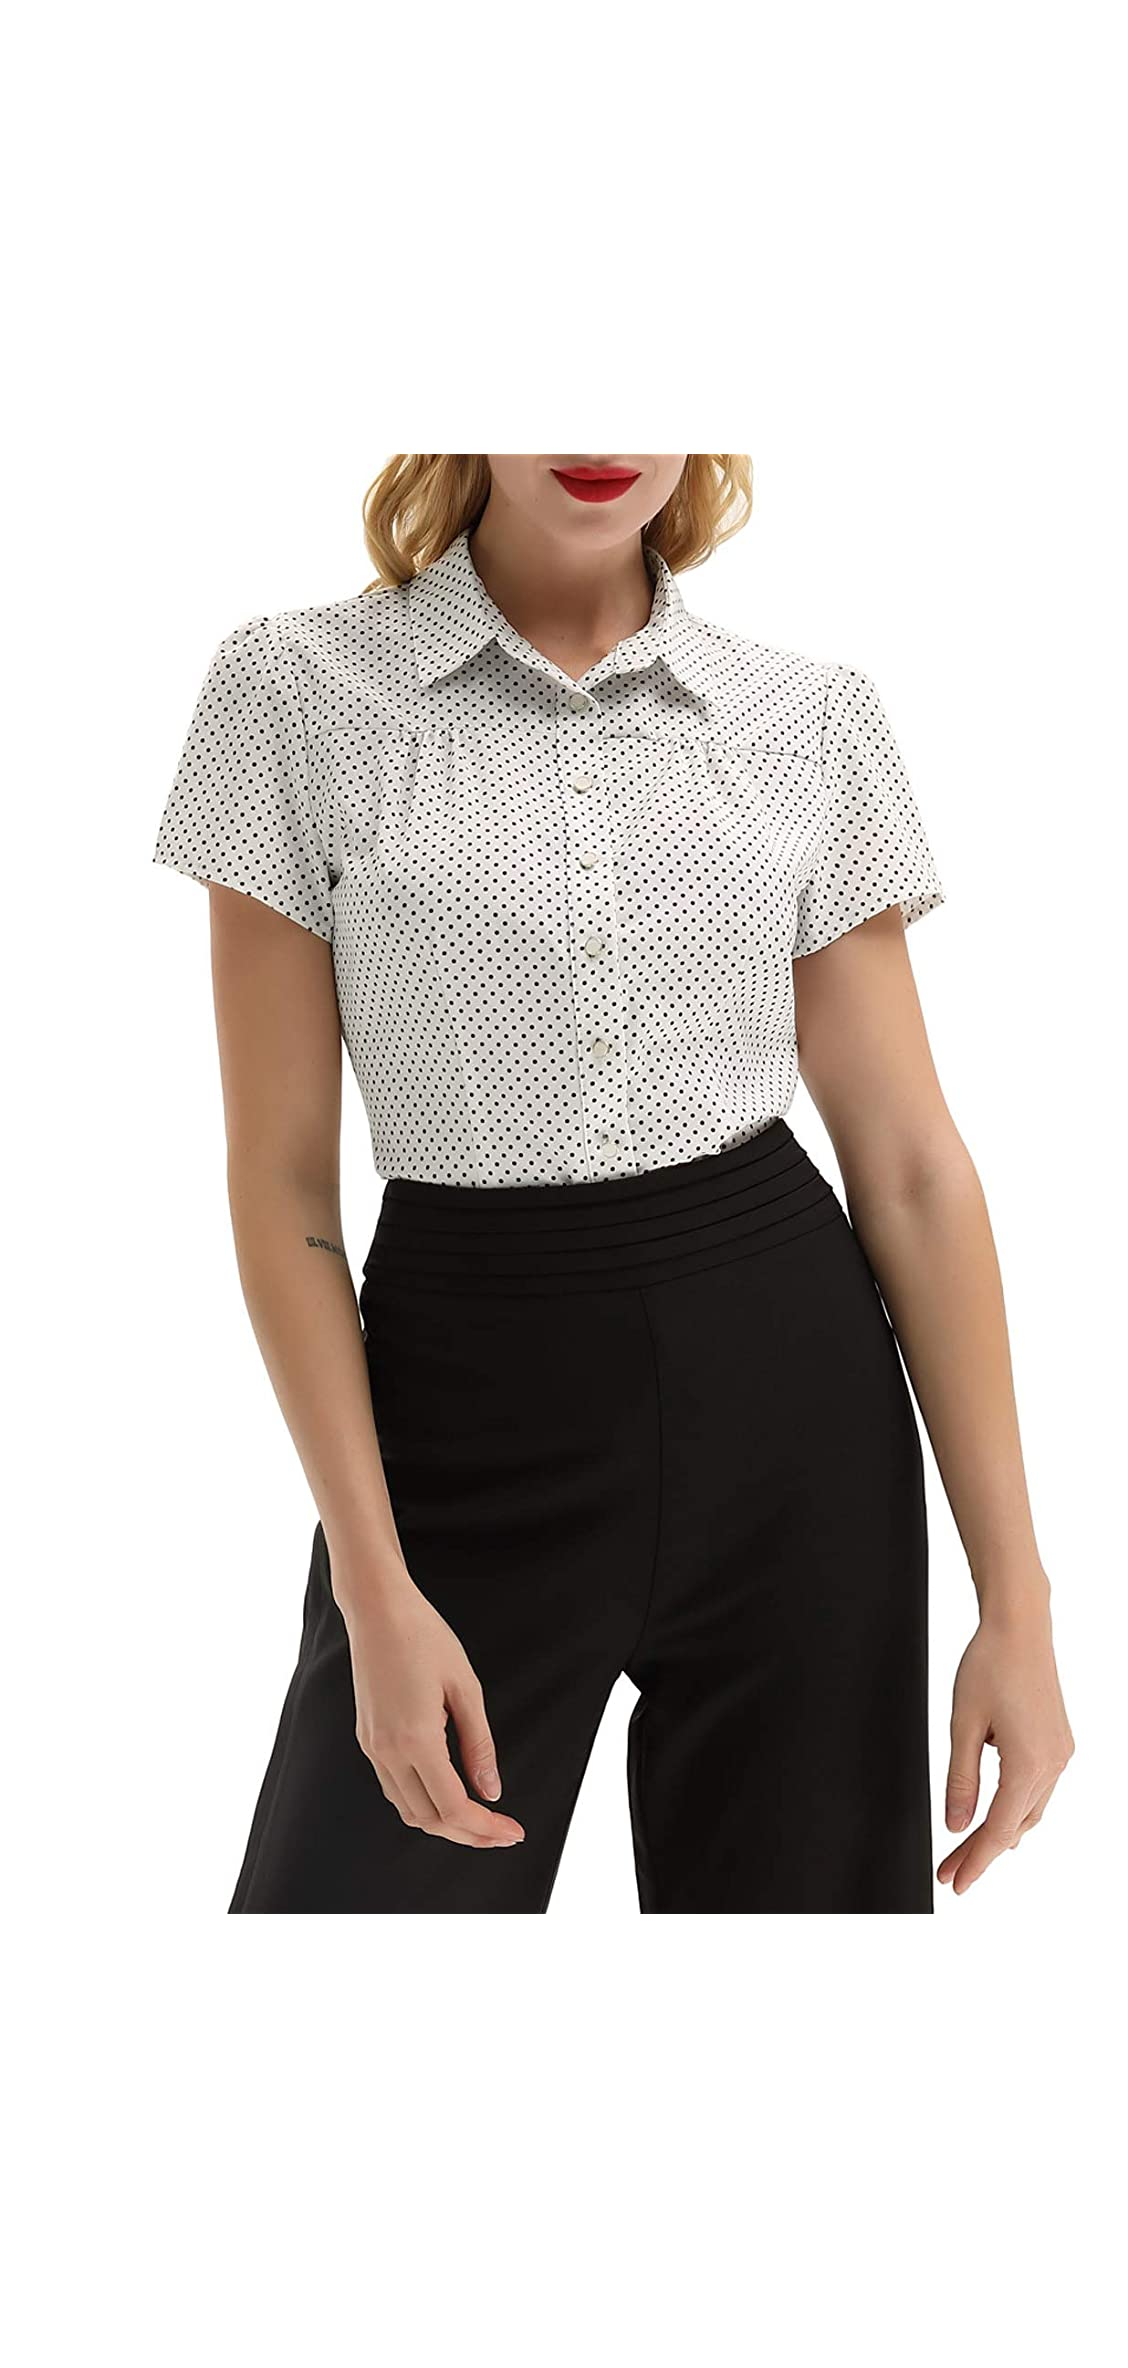 Women's Polka Dot Shirt Tops S Retro Short Tops